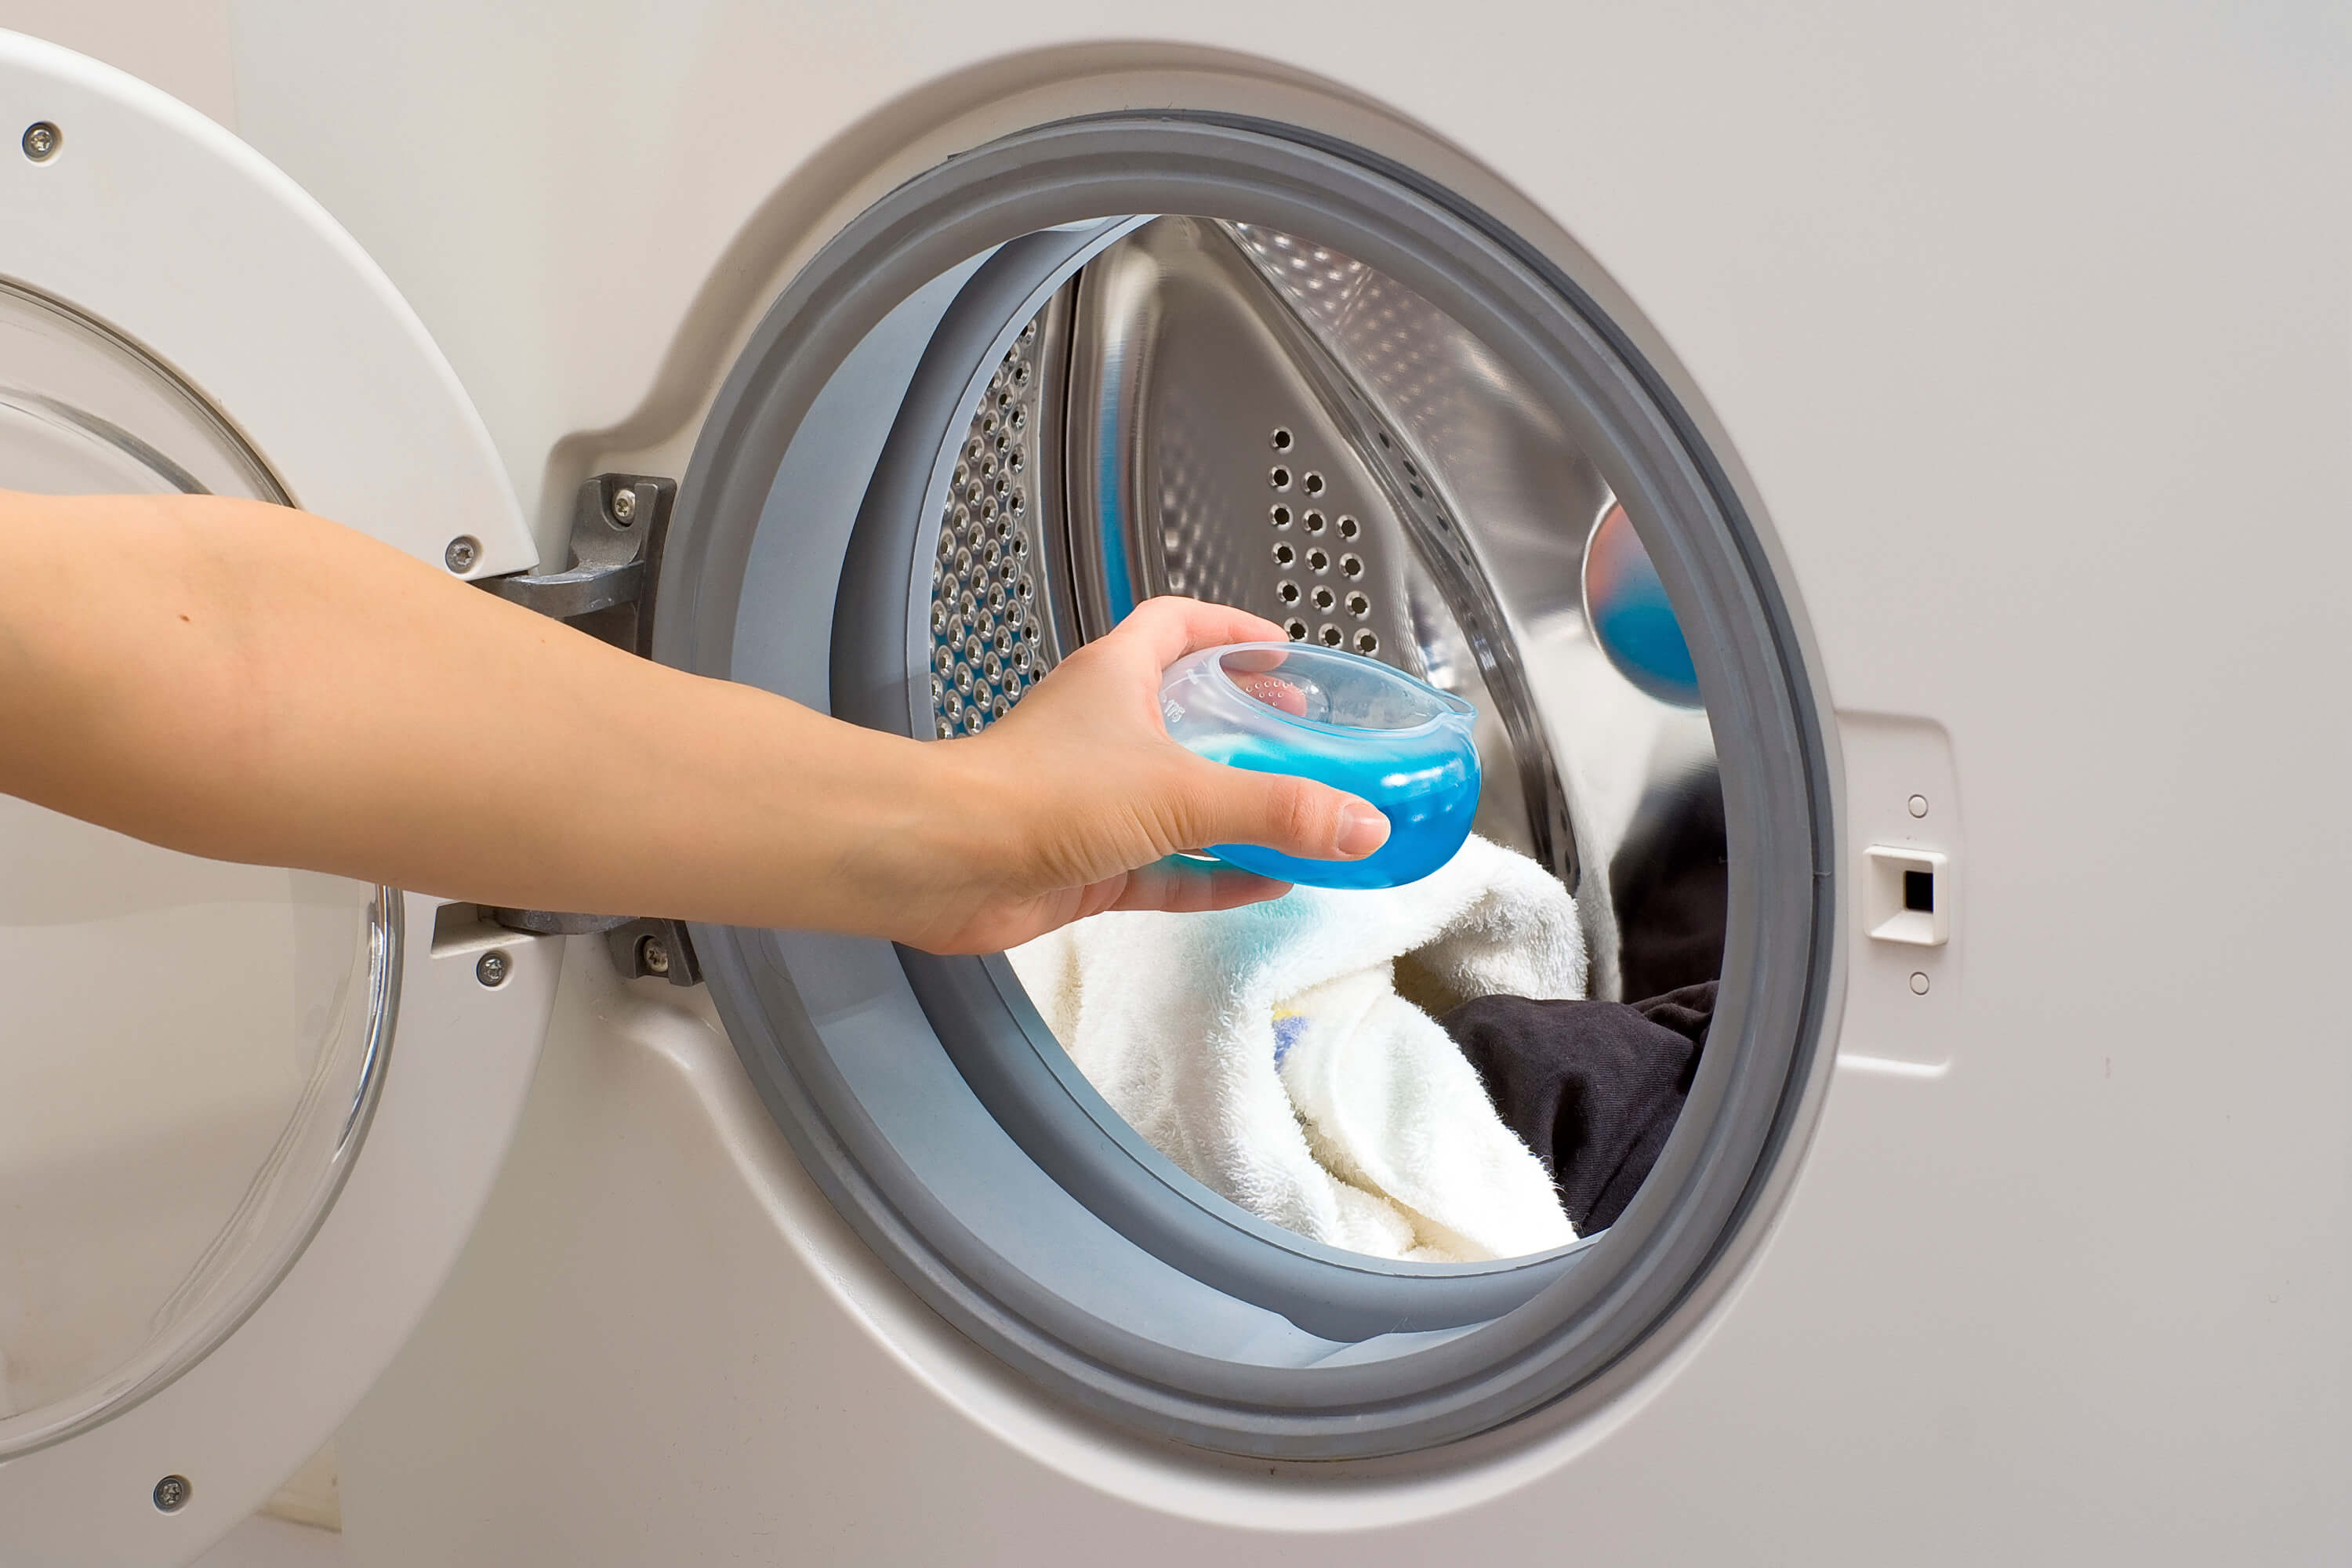 How to prevent mold in the washing machine